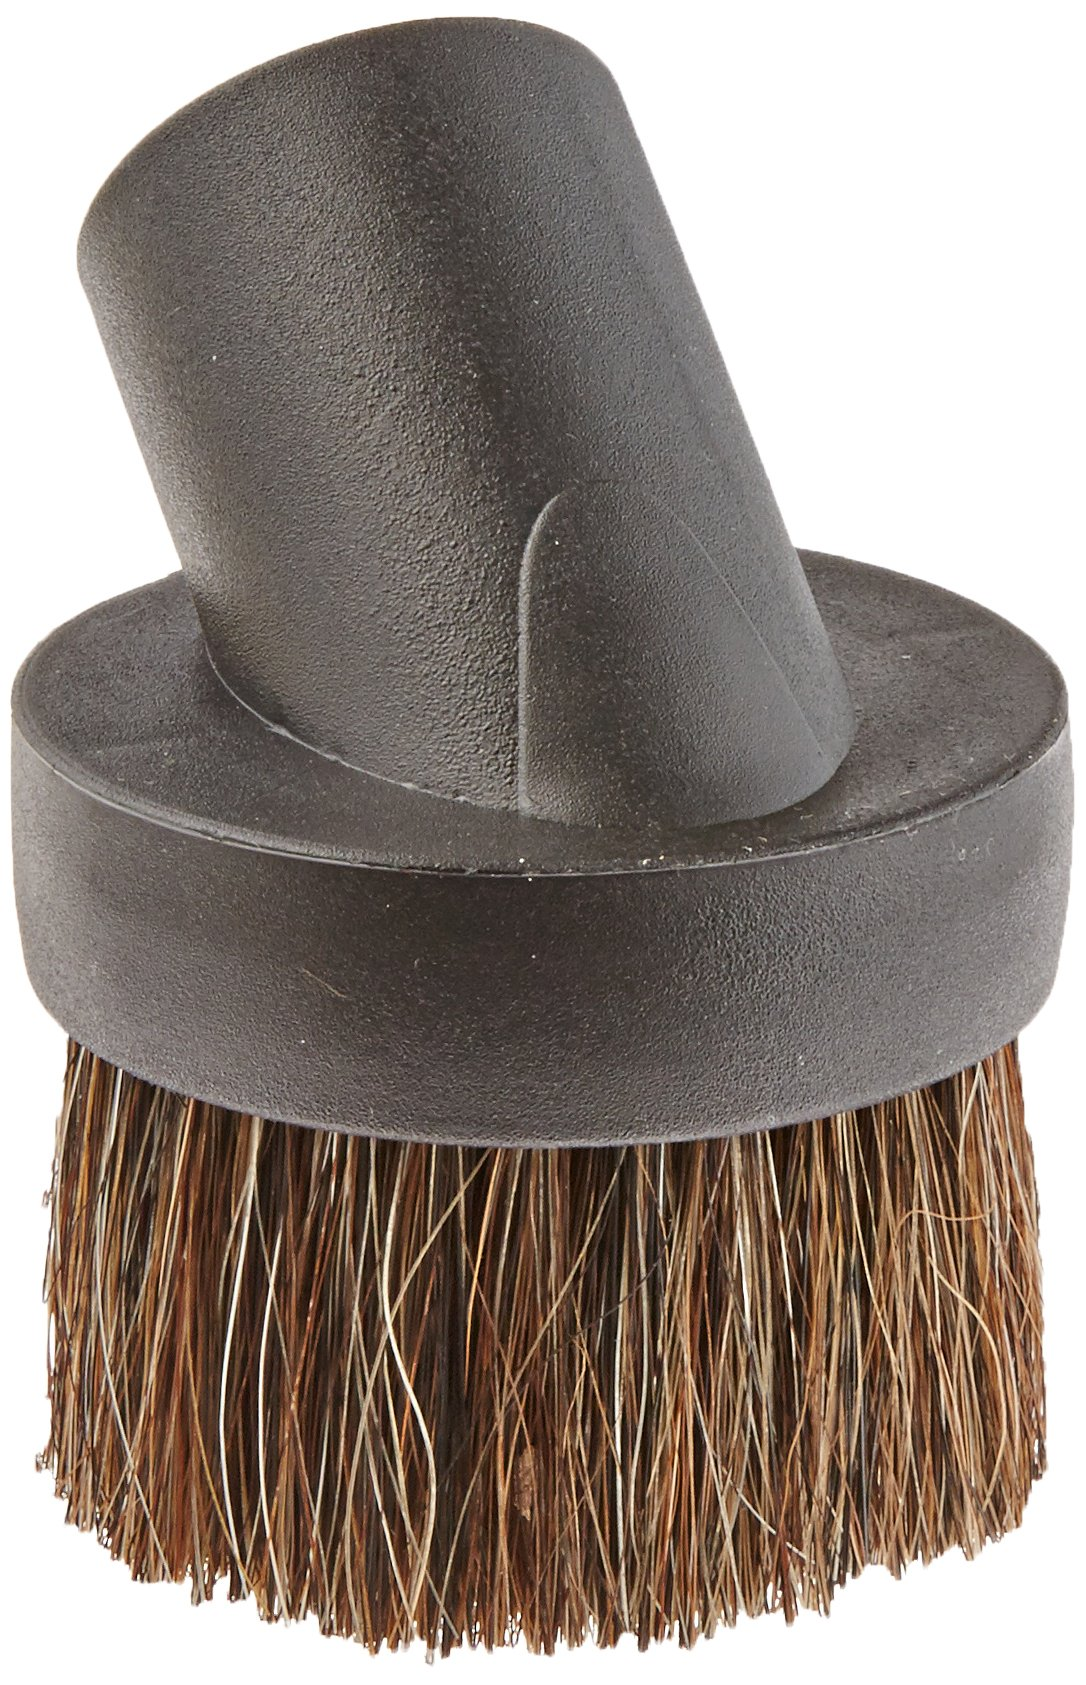 Replacement Dusting Brush Fits Most Vacuums